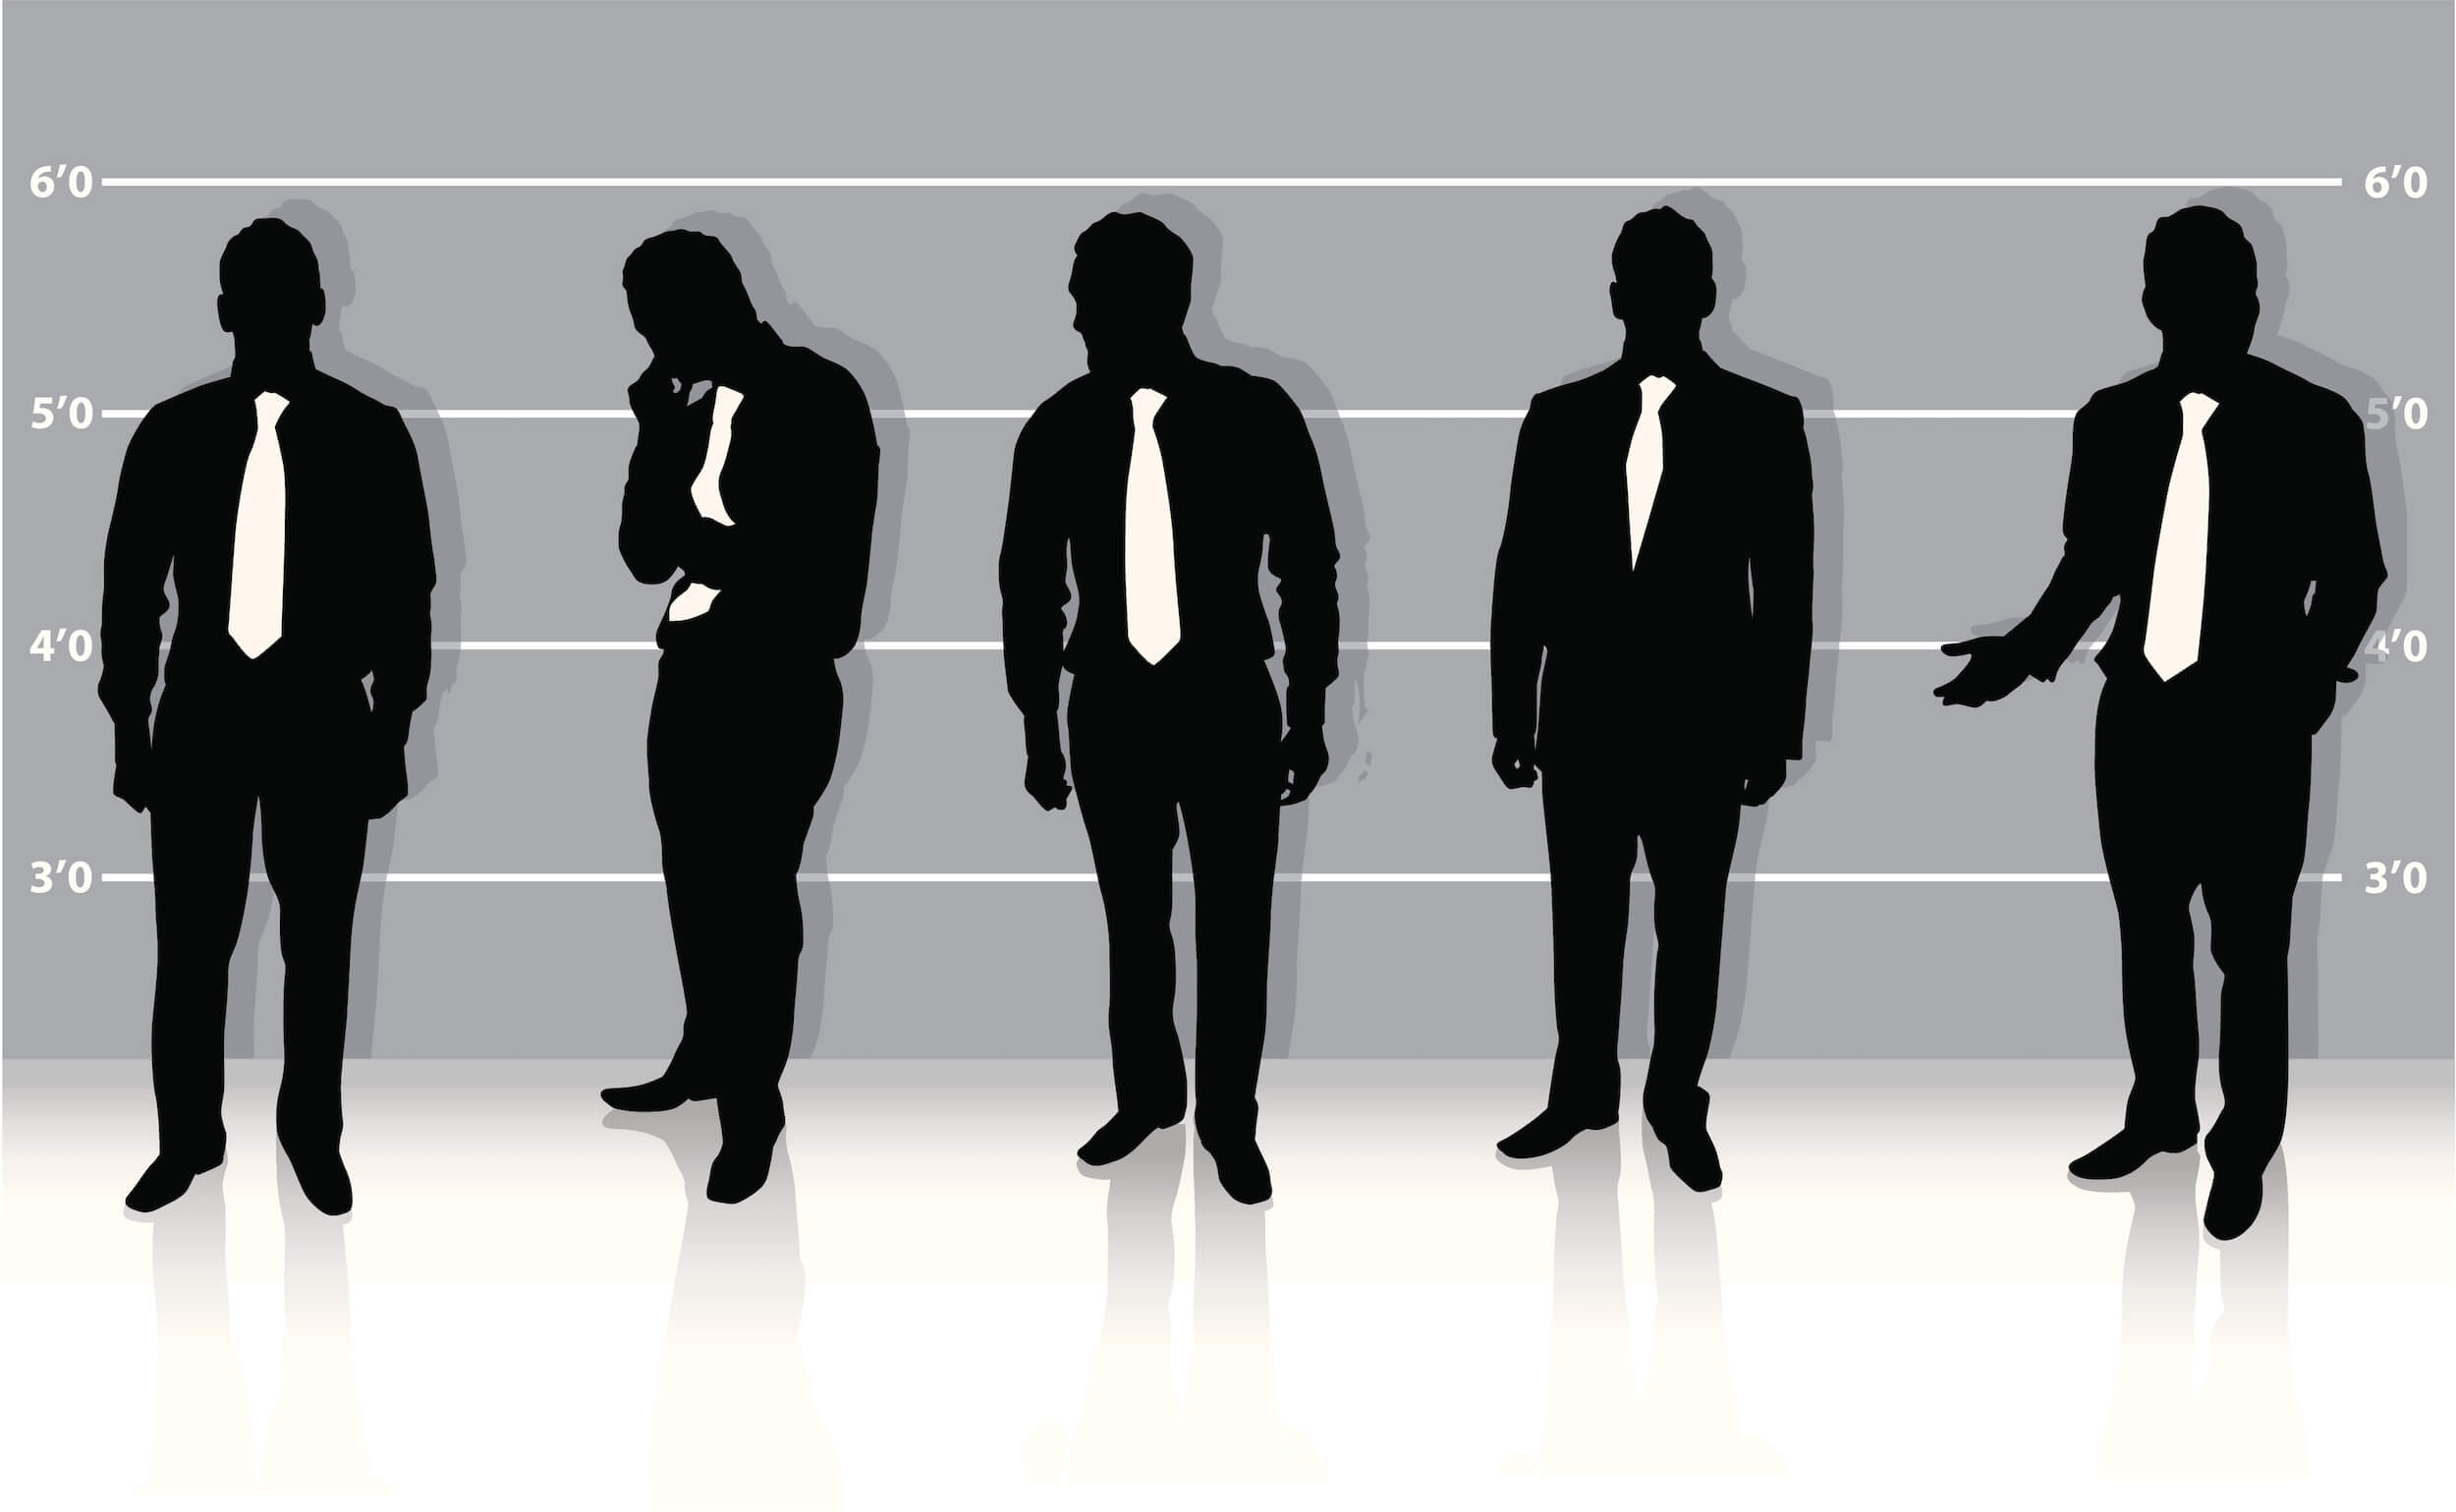 Asset Search and Discovery - Police Line-up of Potential Suspects in a Corporate Fraud Scheme